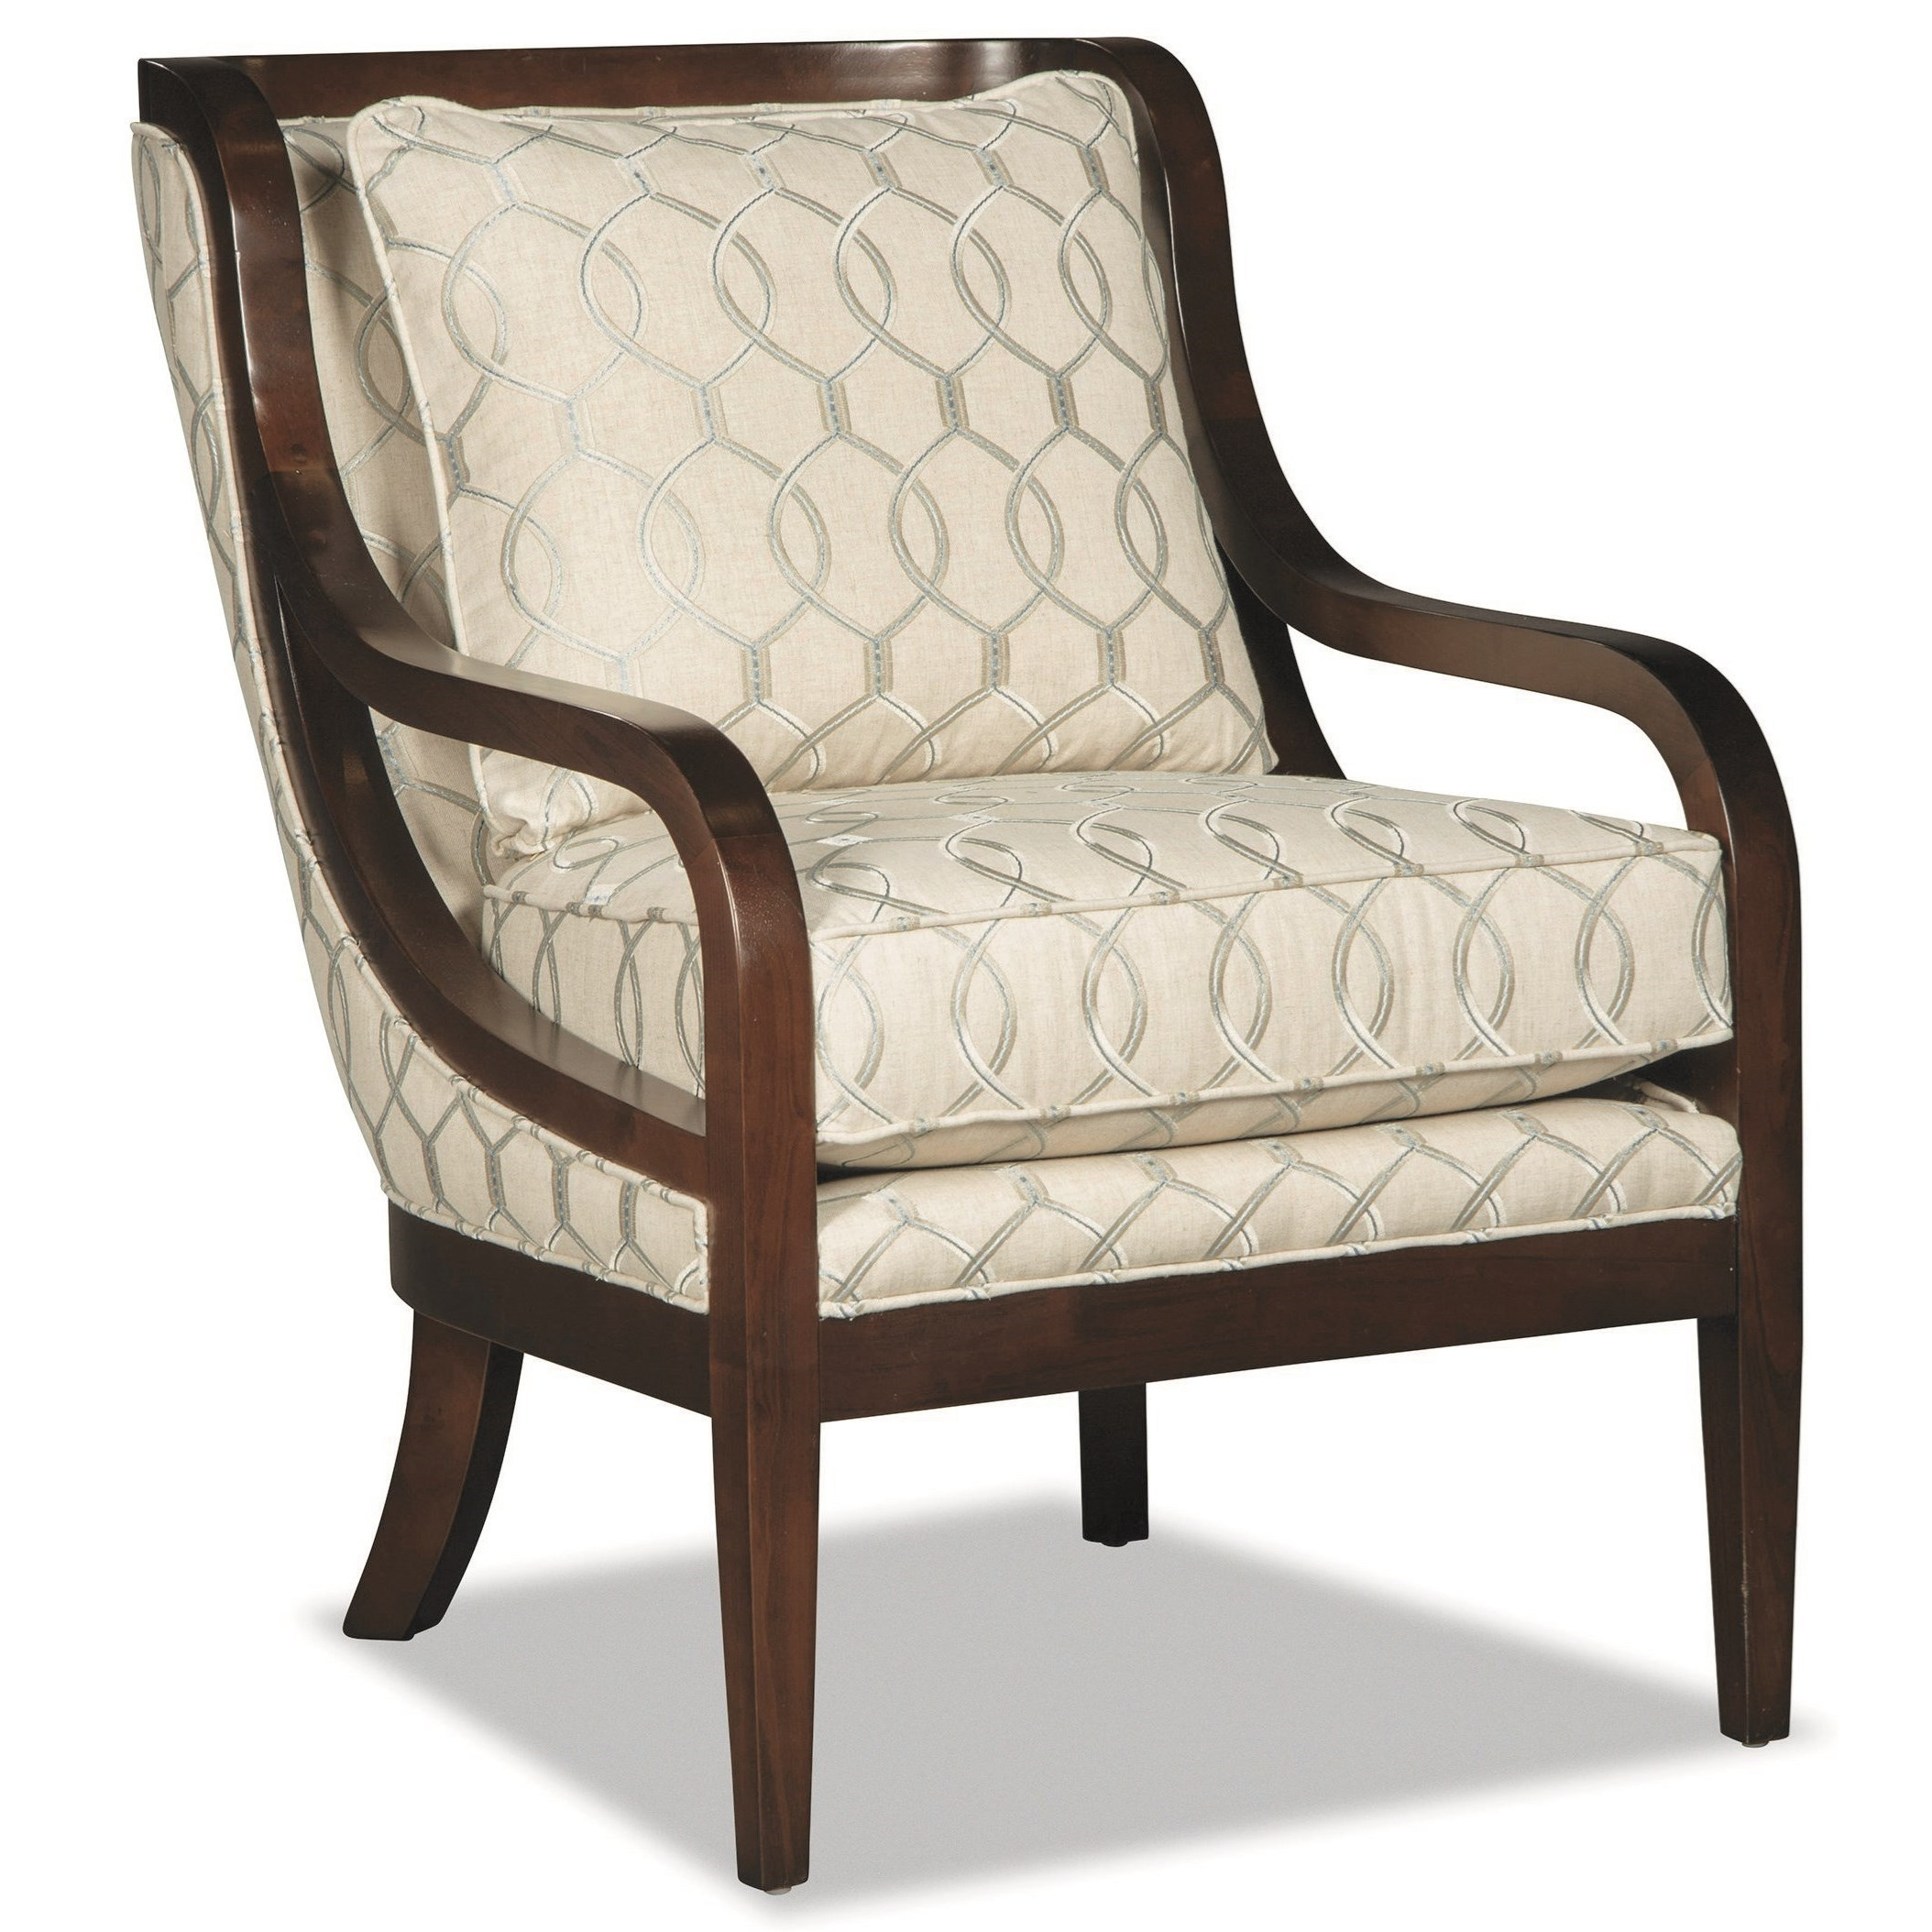 Accent Chair with Exposed Wood Trim and Customizable Wood Finish